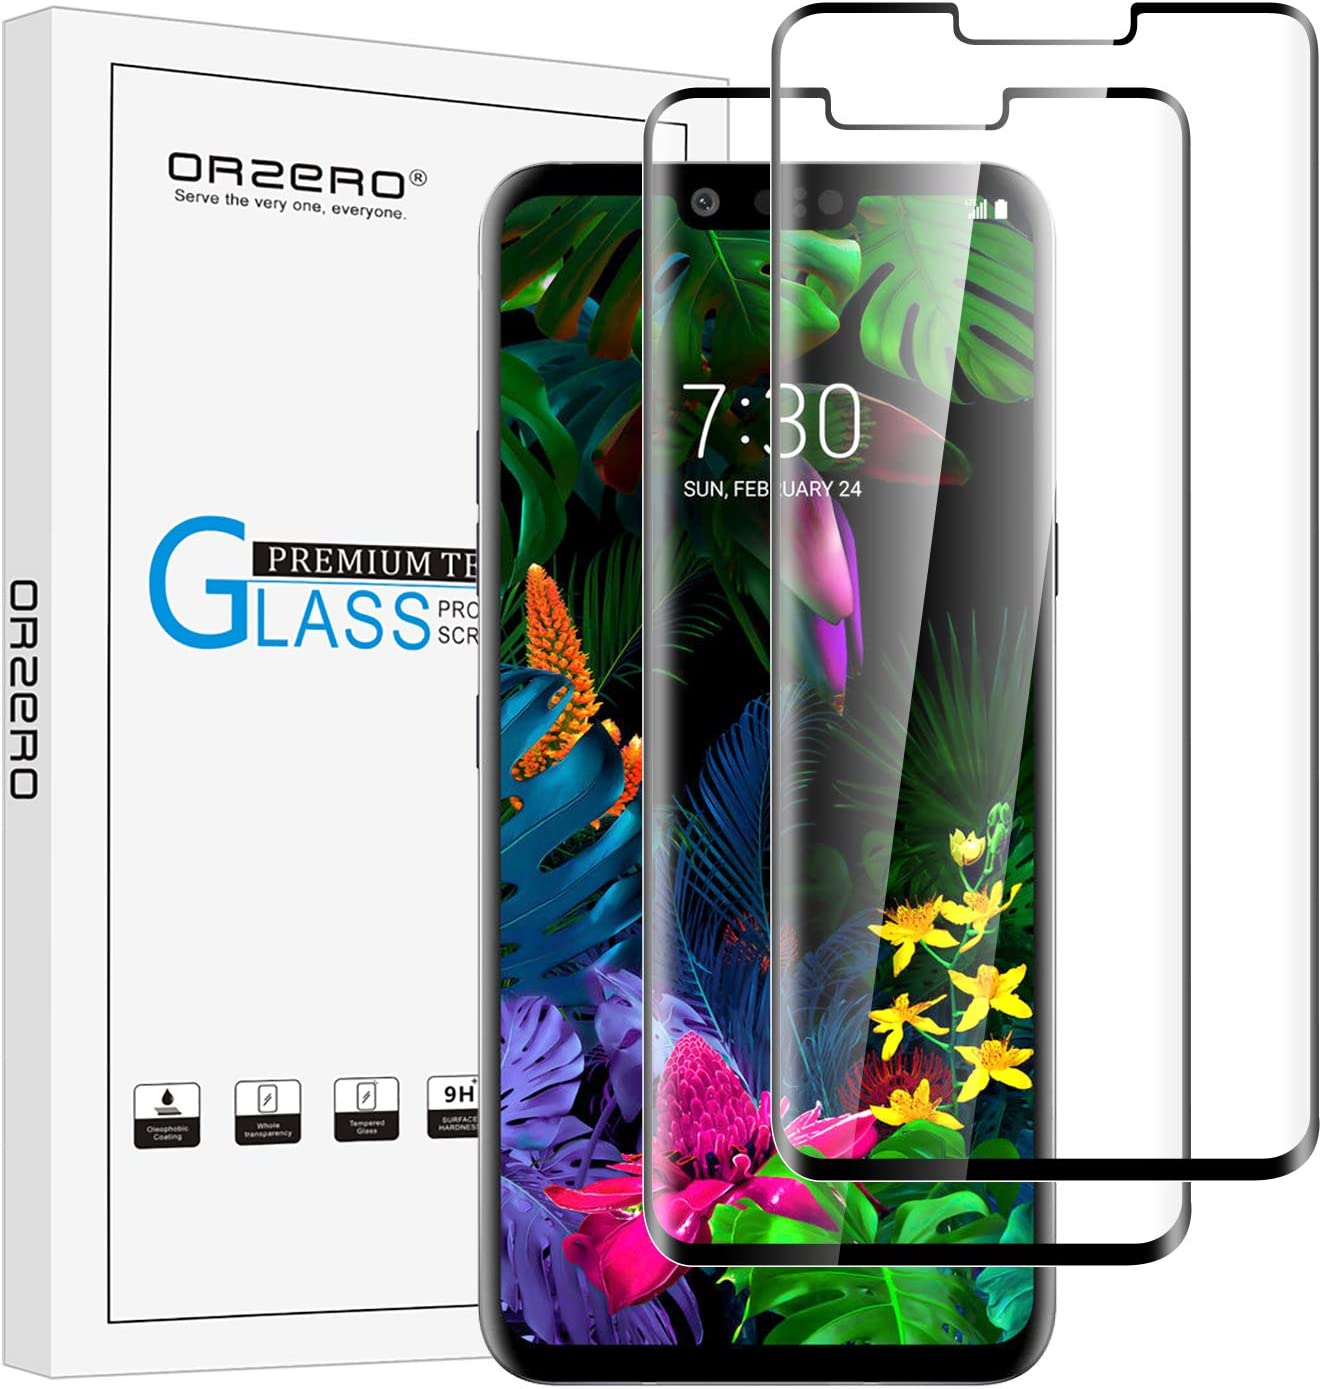 (2 Pack) Orzero Tempered Glass Screen Protector Compatible for LG G8 Thinq, (3D Curved Edge) 9 Hardness HD Anti-Scratch (Case Friendly)(Smaller Version) (Lifetime Replacement)